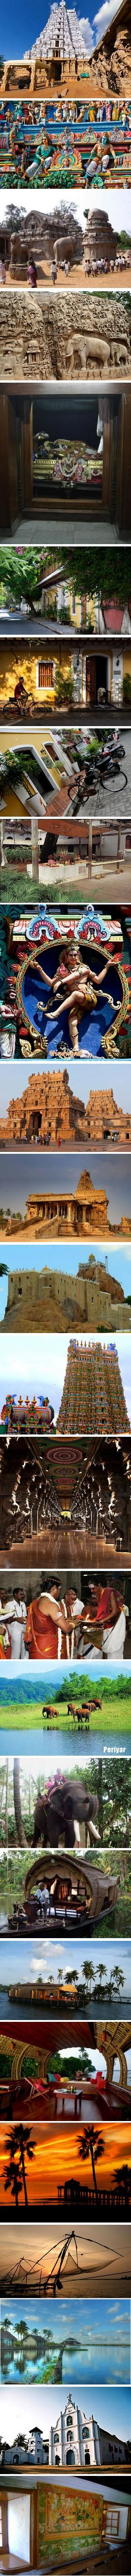 Glimpses of south India Tour – South India Tours @ Travel Agents in Delhi http://toursfromdelhi.com/13-days-glimpses-of-south-india-tour